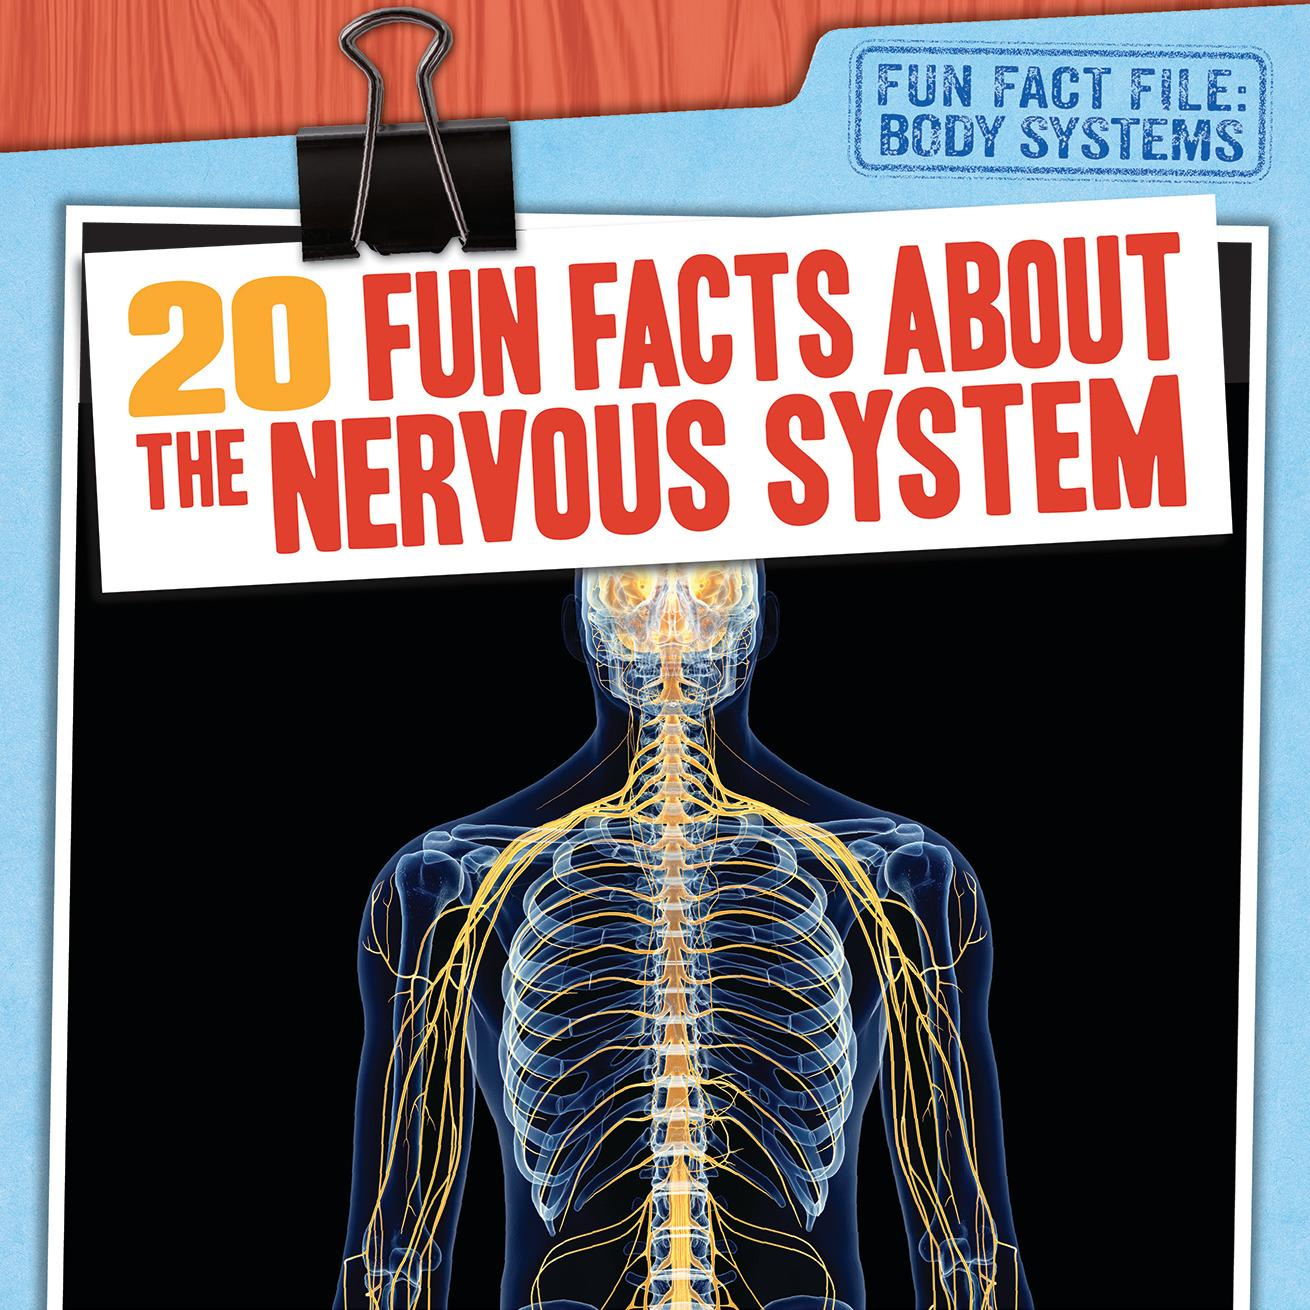 20 Fun Facts About The Nervous System